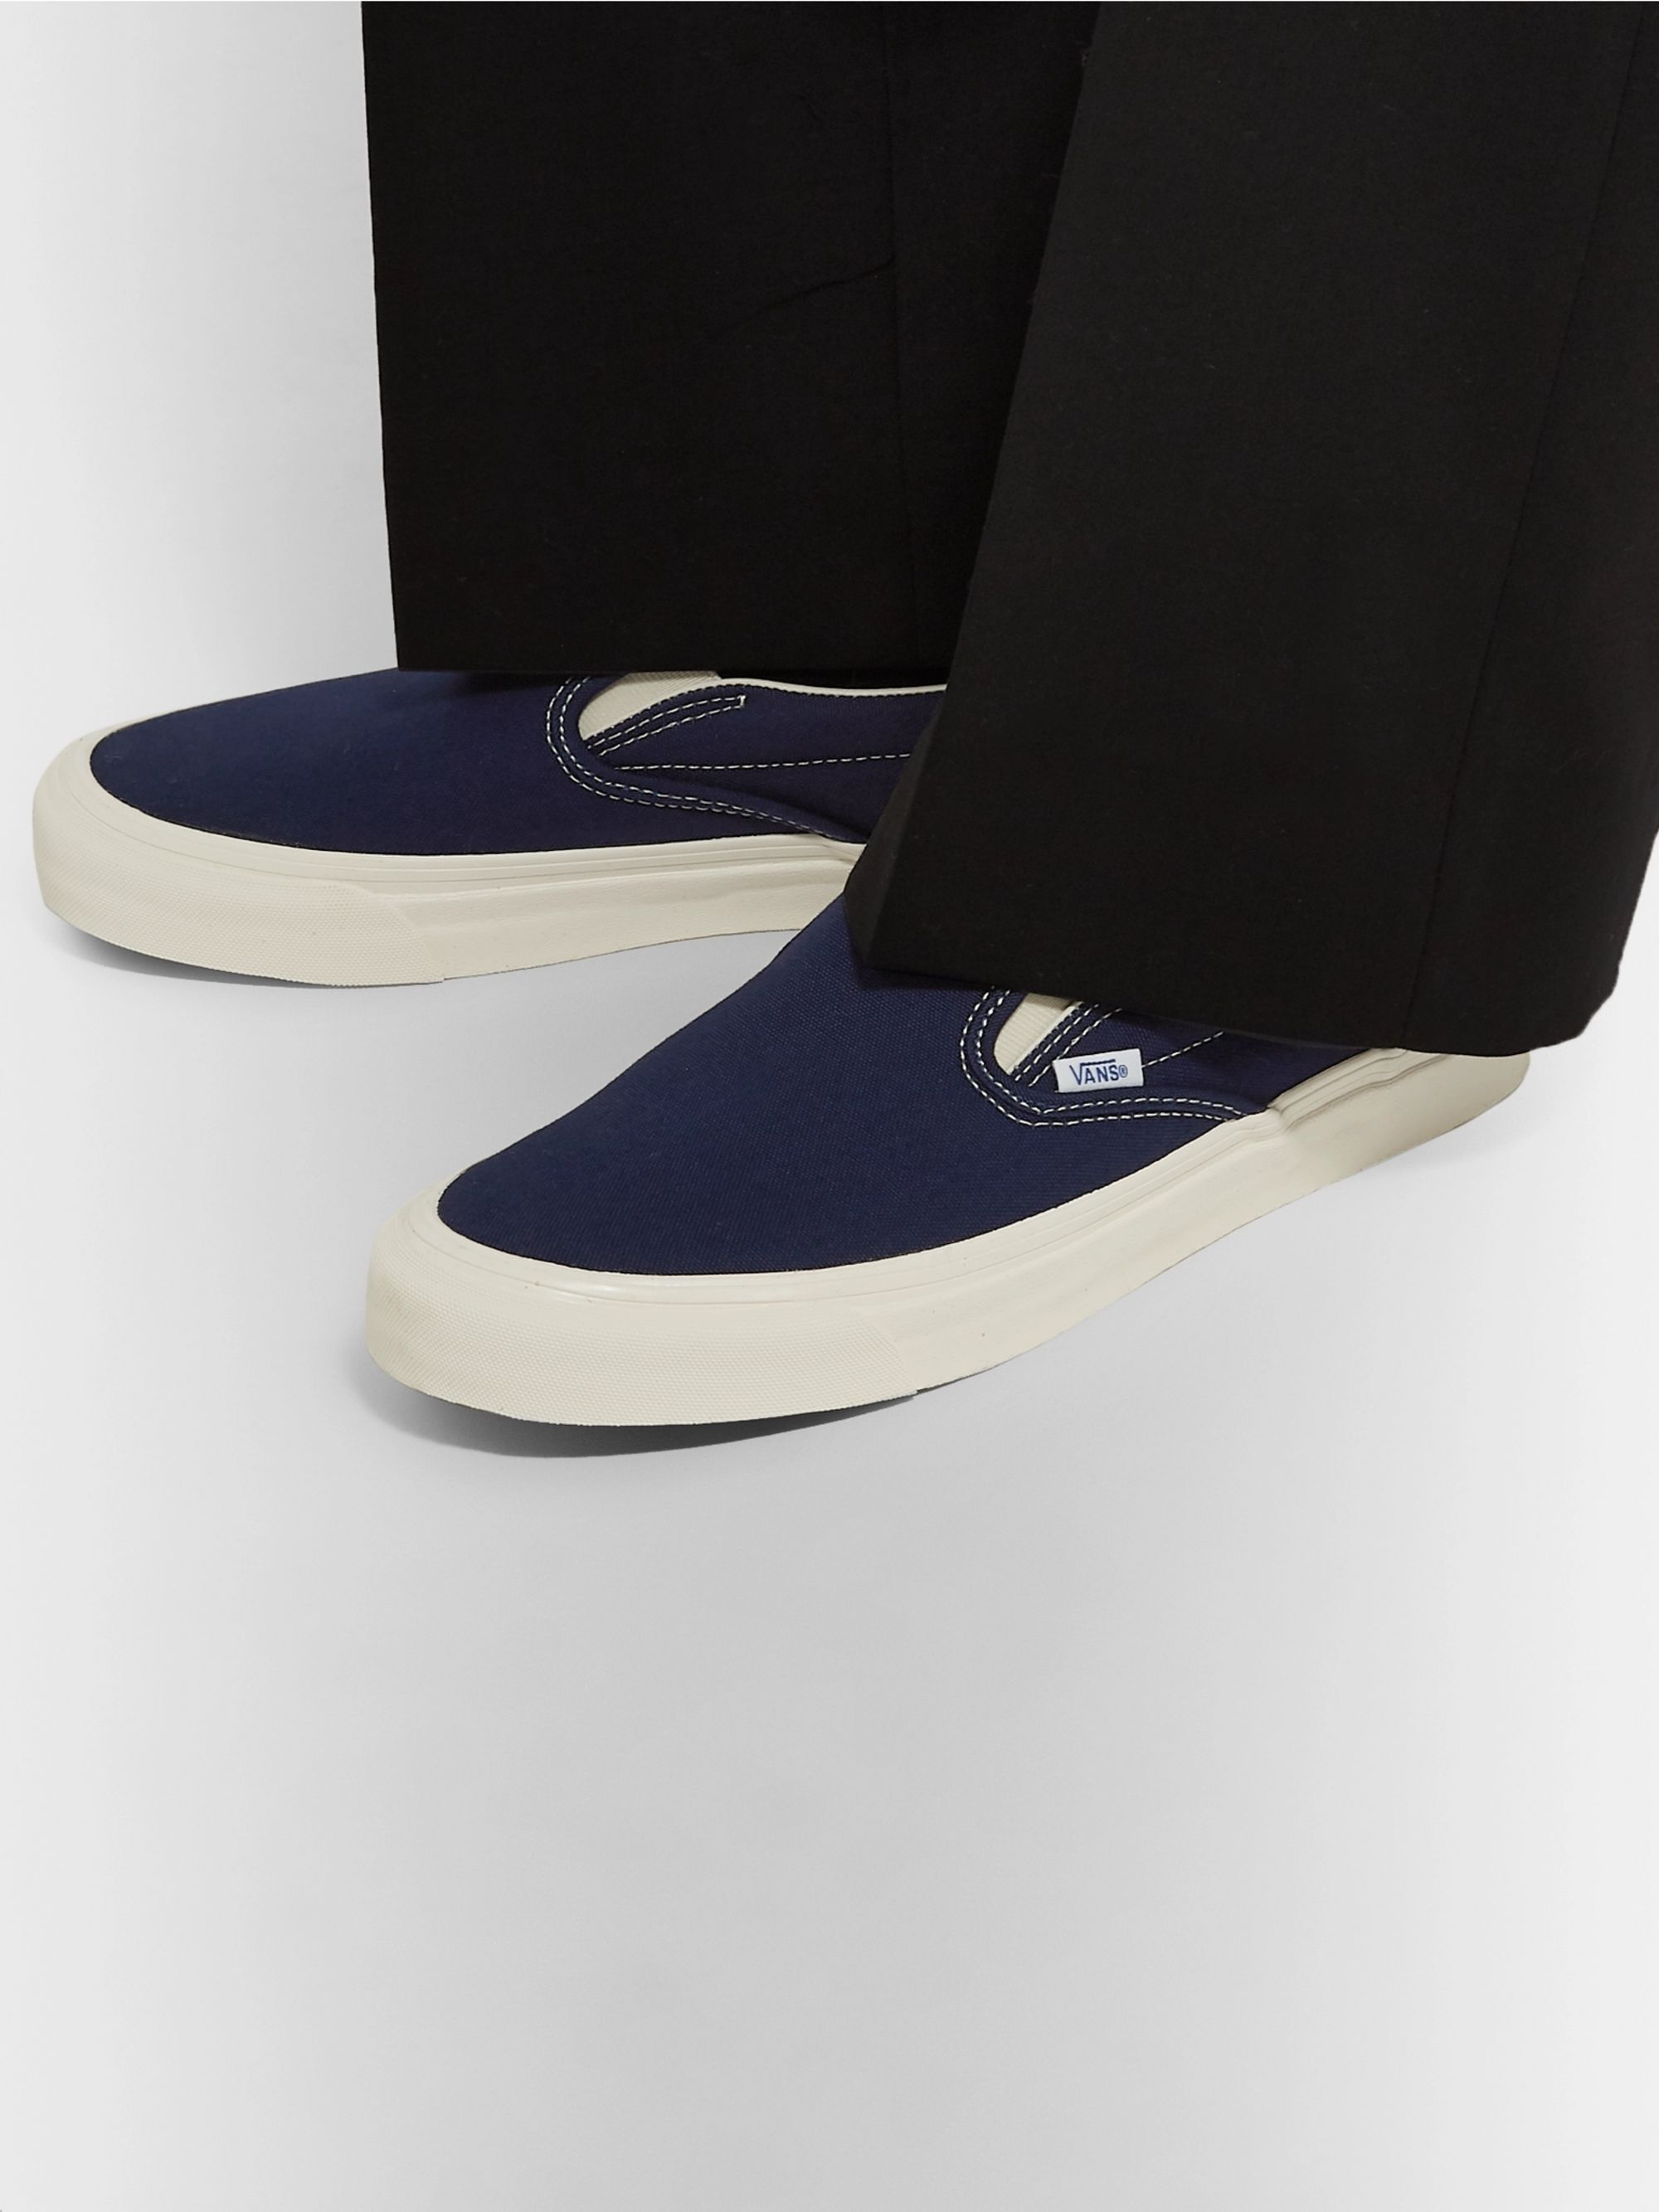 OG Classic LX Canvas Slip On Sneakers